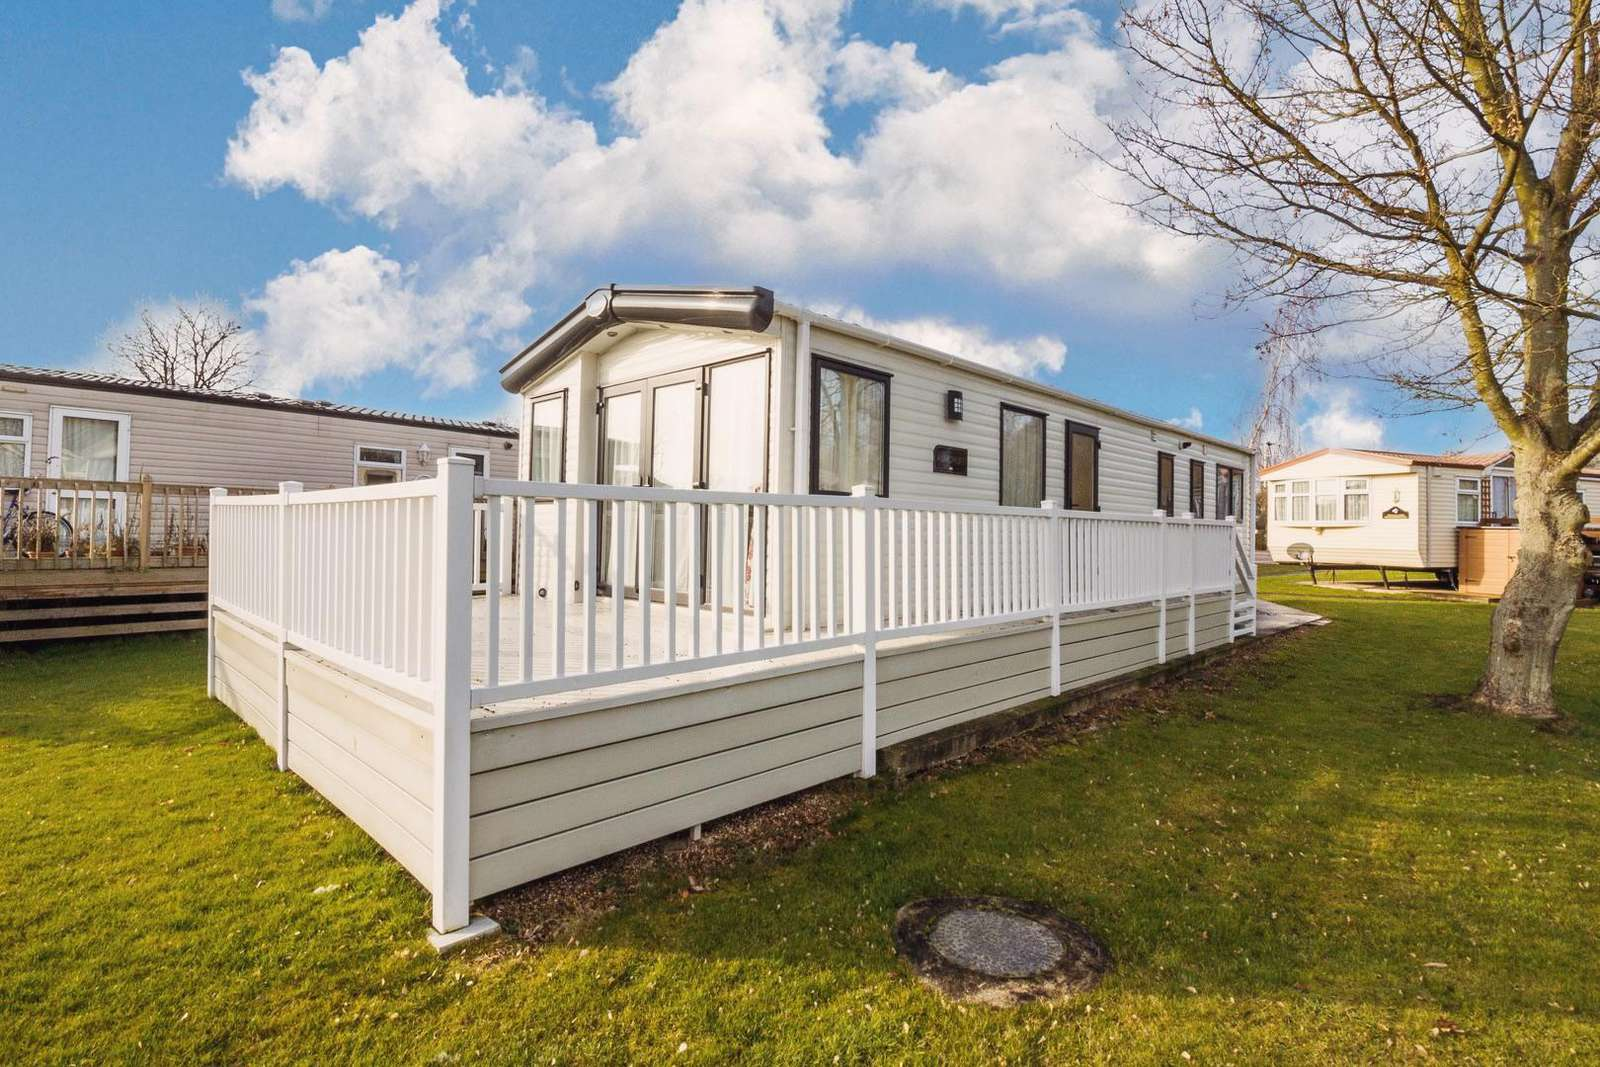 Carlton Meres Holiday Park accommodation for hire - property